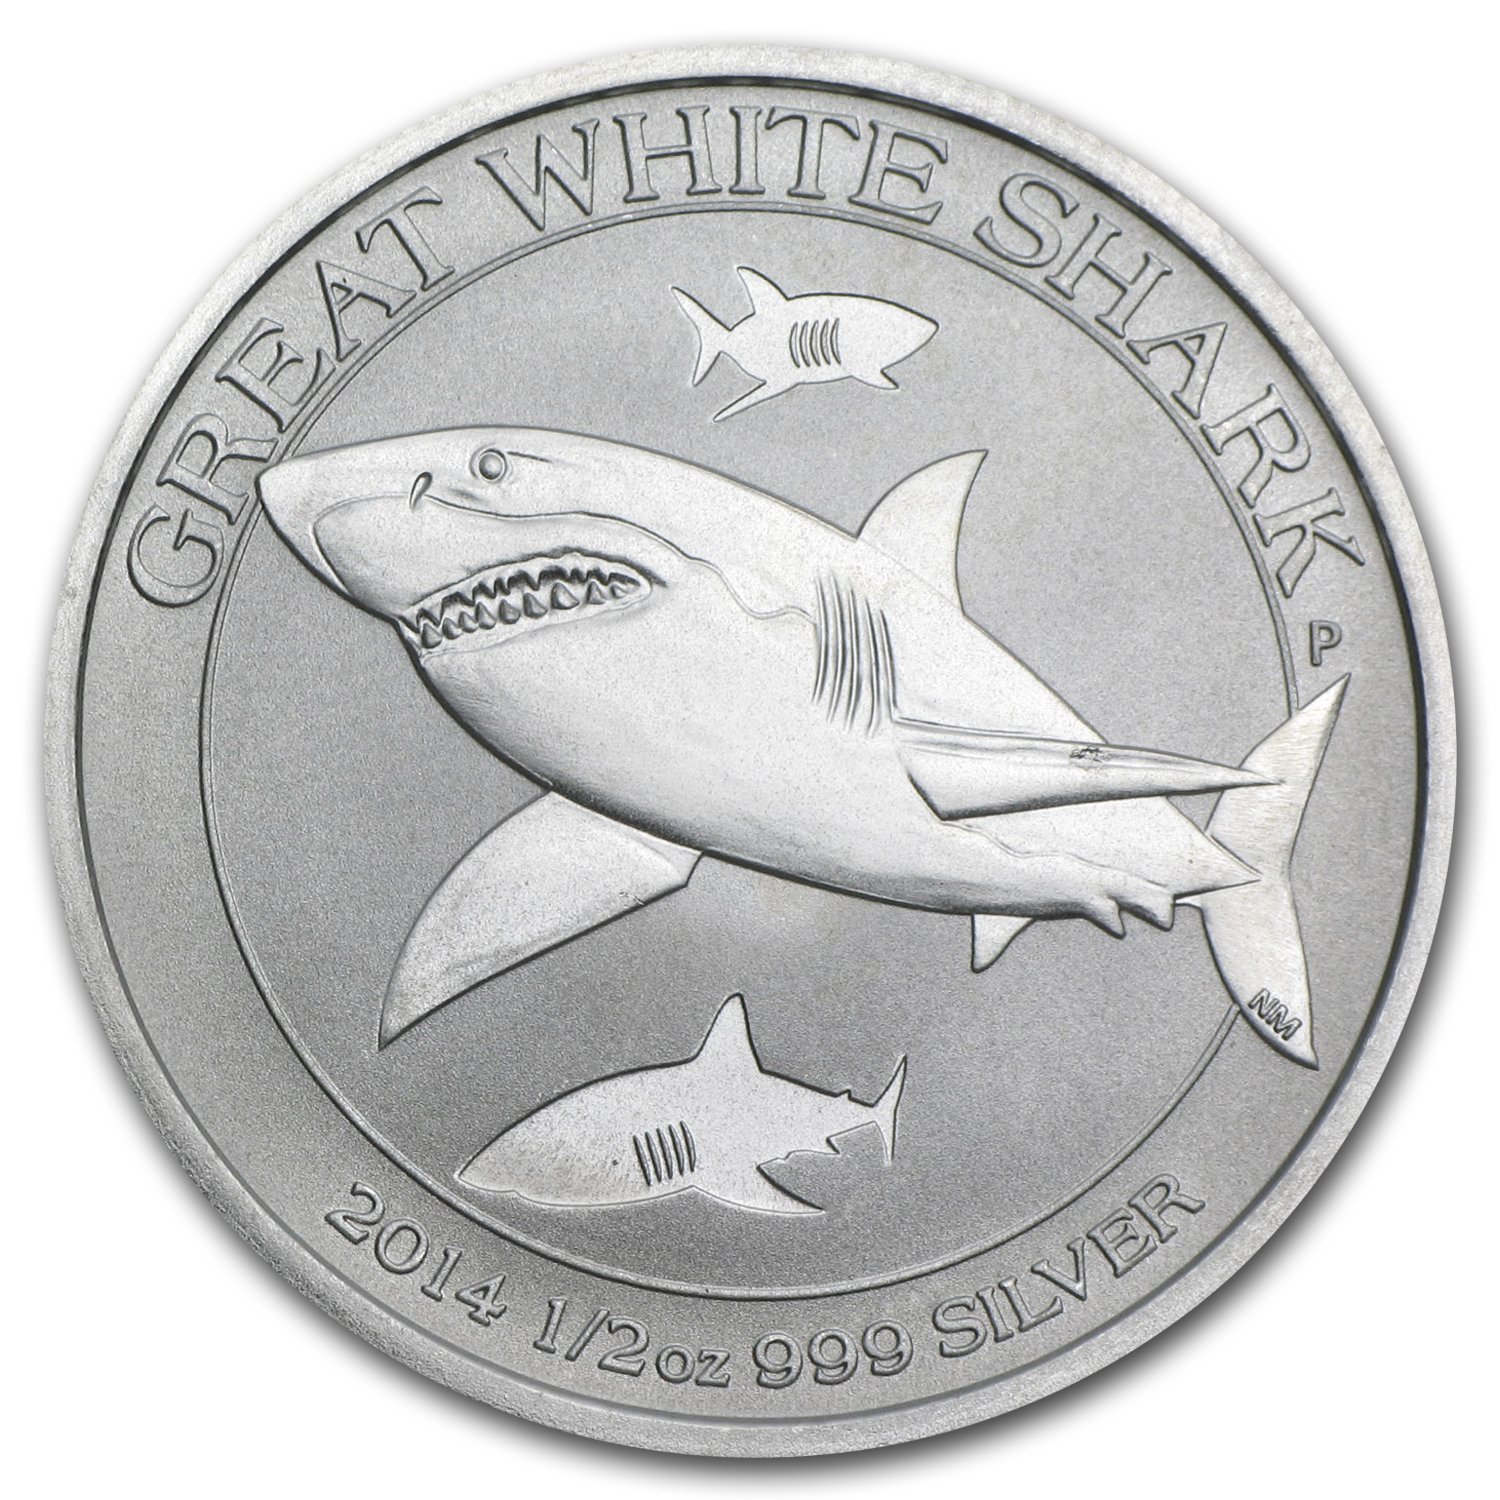 2014 Australia 1/2 oz Silver Great White Shark BU